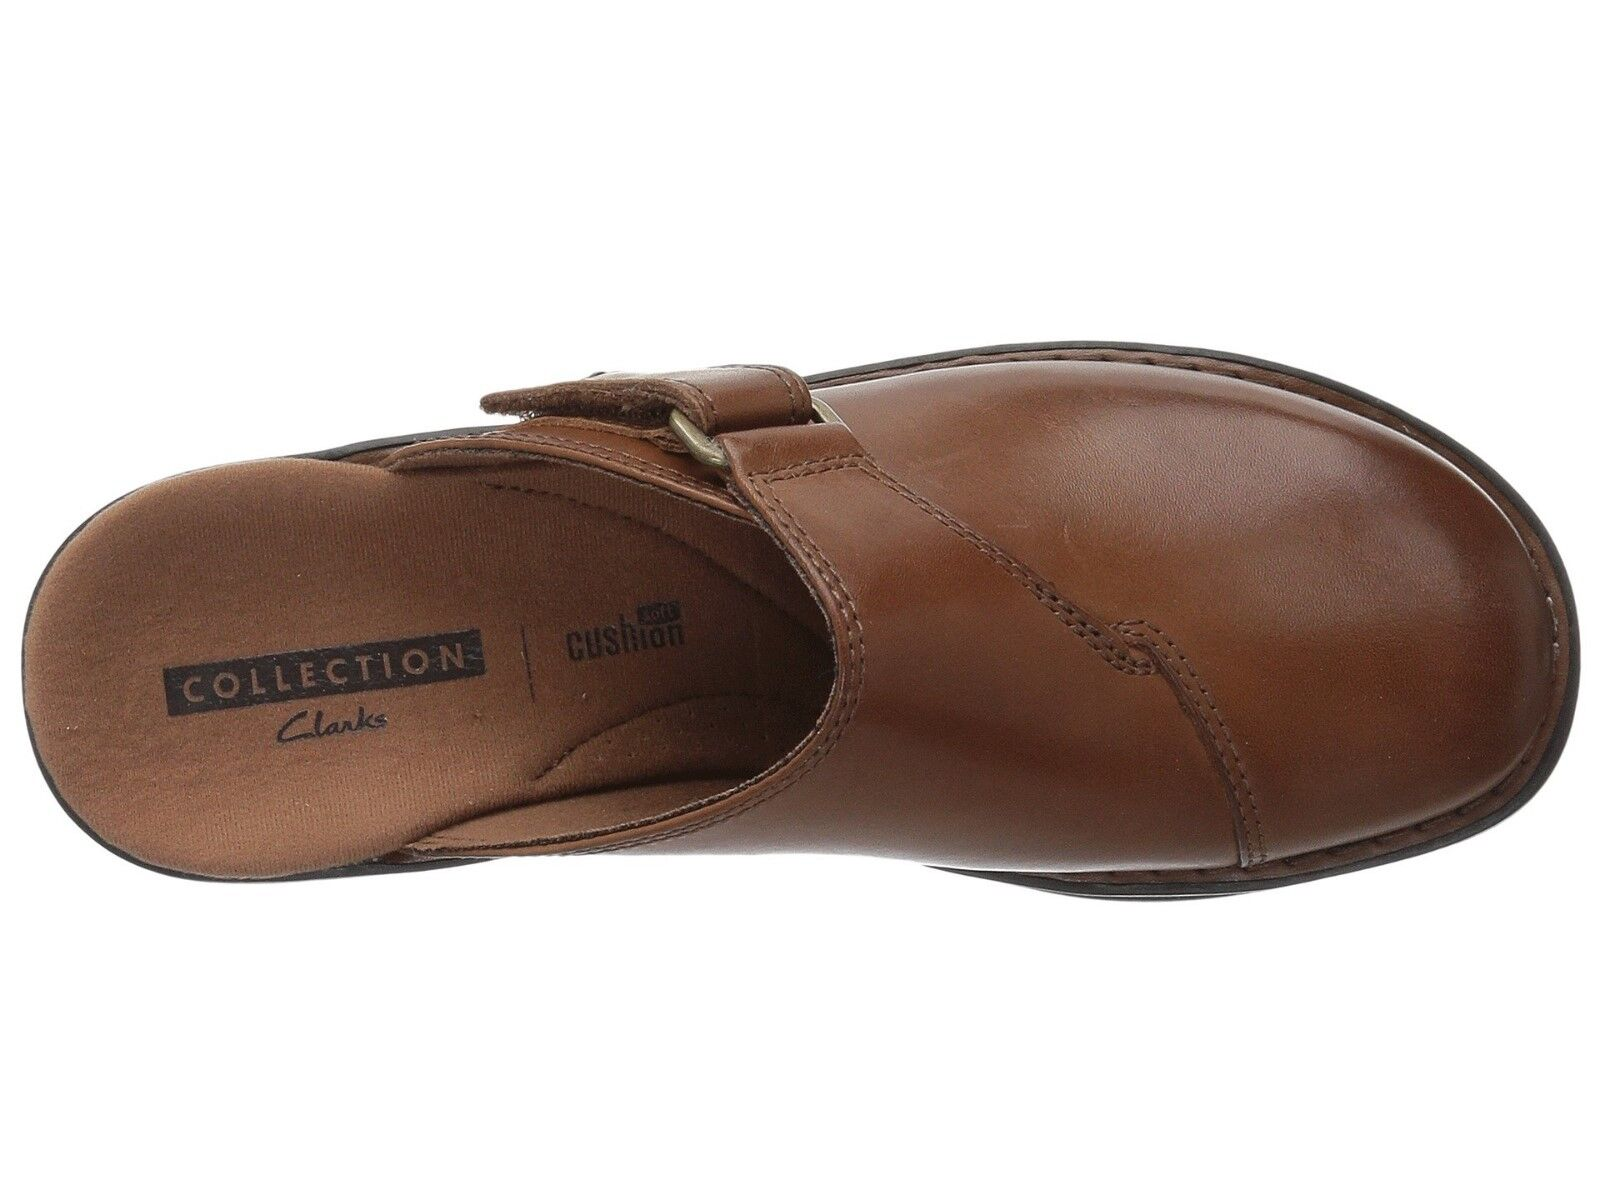 Clarks Shoes Women's Patty Nell Mule Clog Slip On Backout Dk Tan 5 or 5.5 1